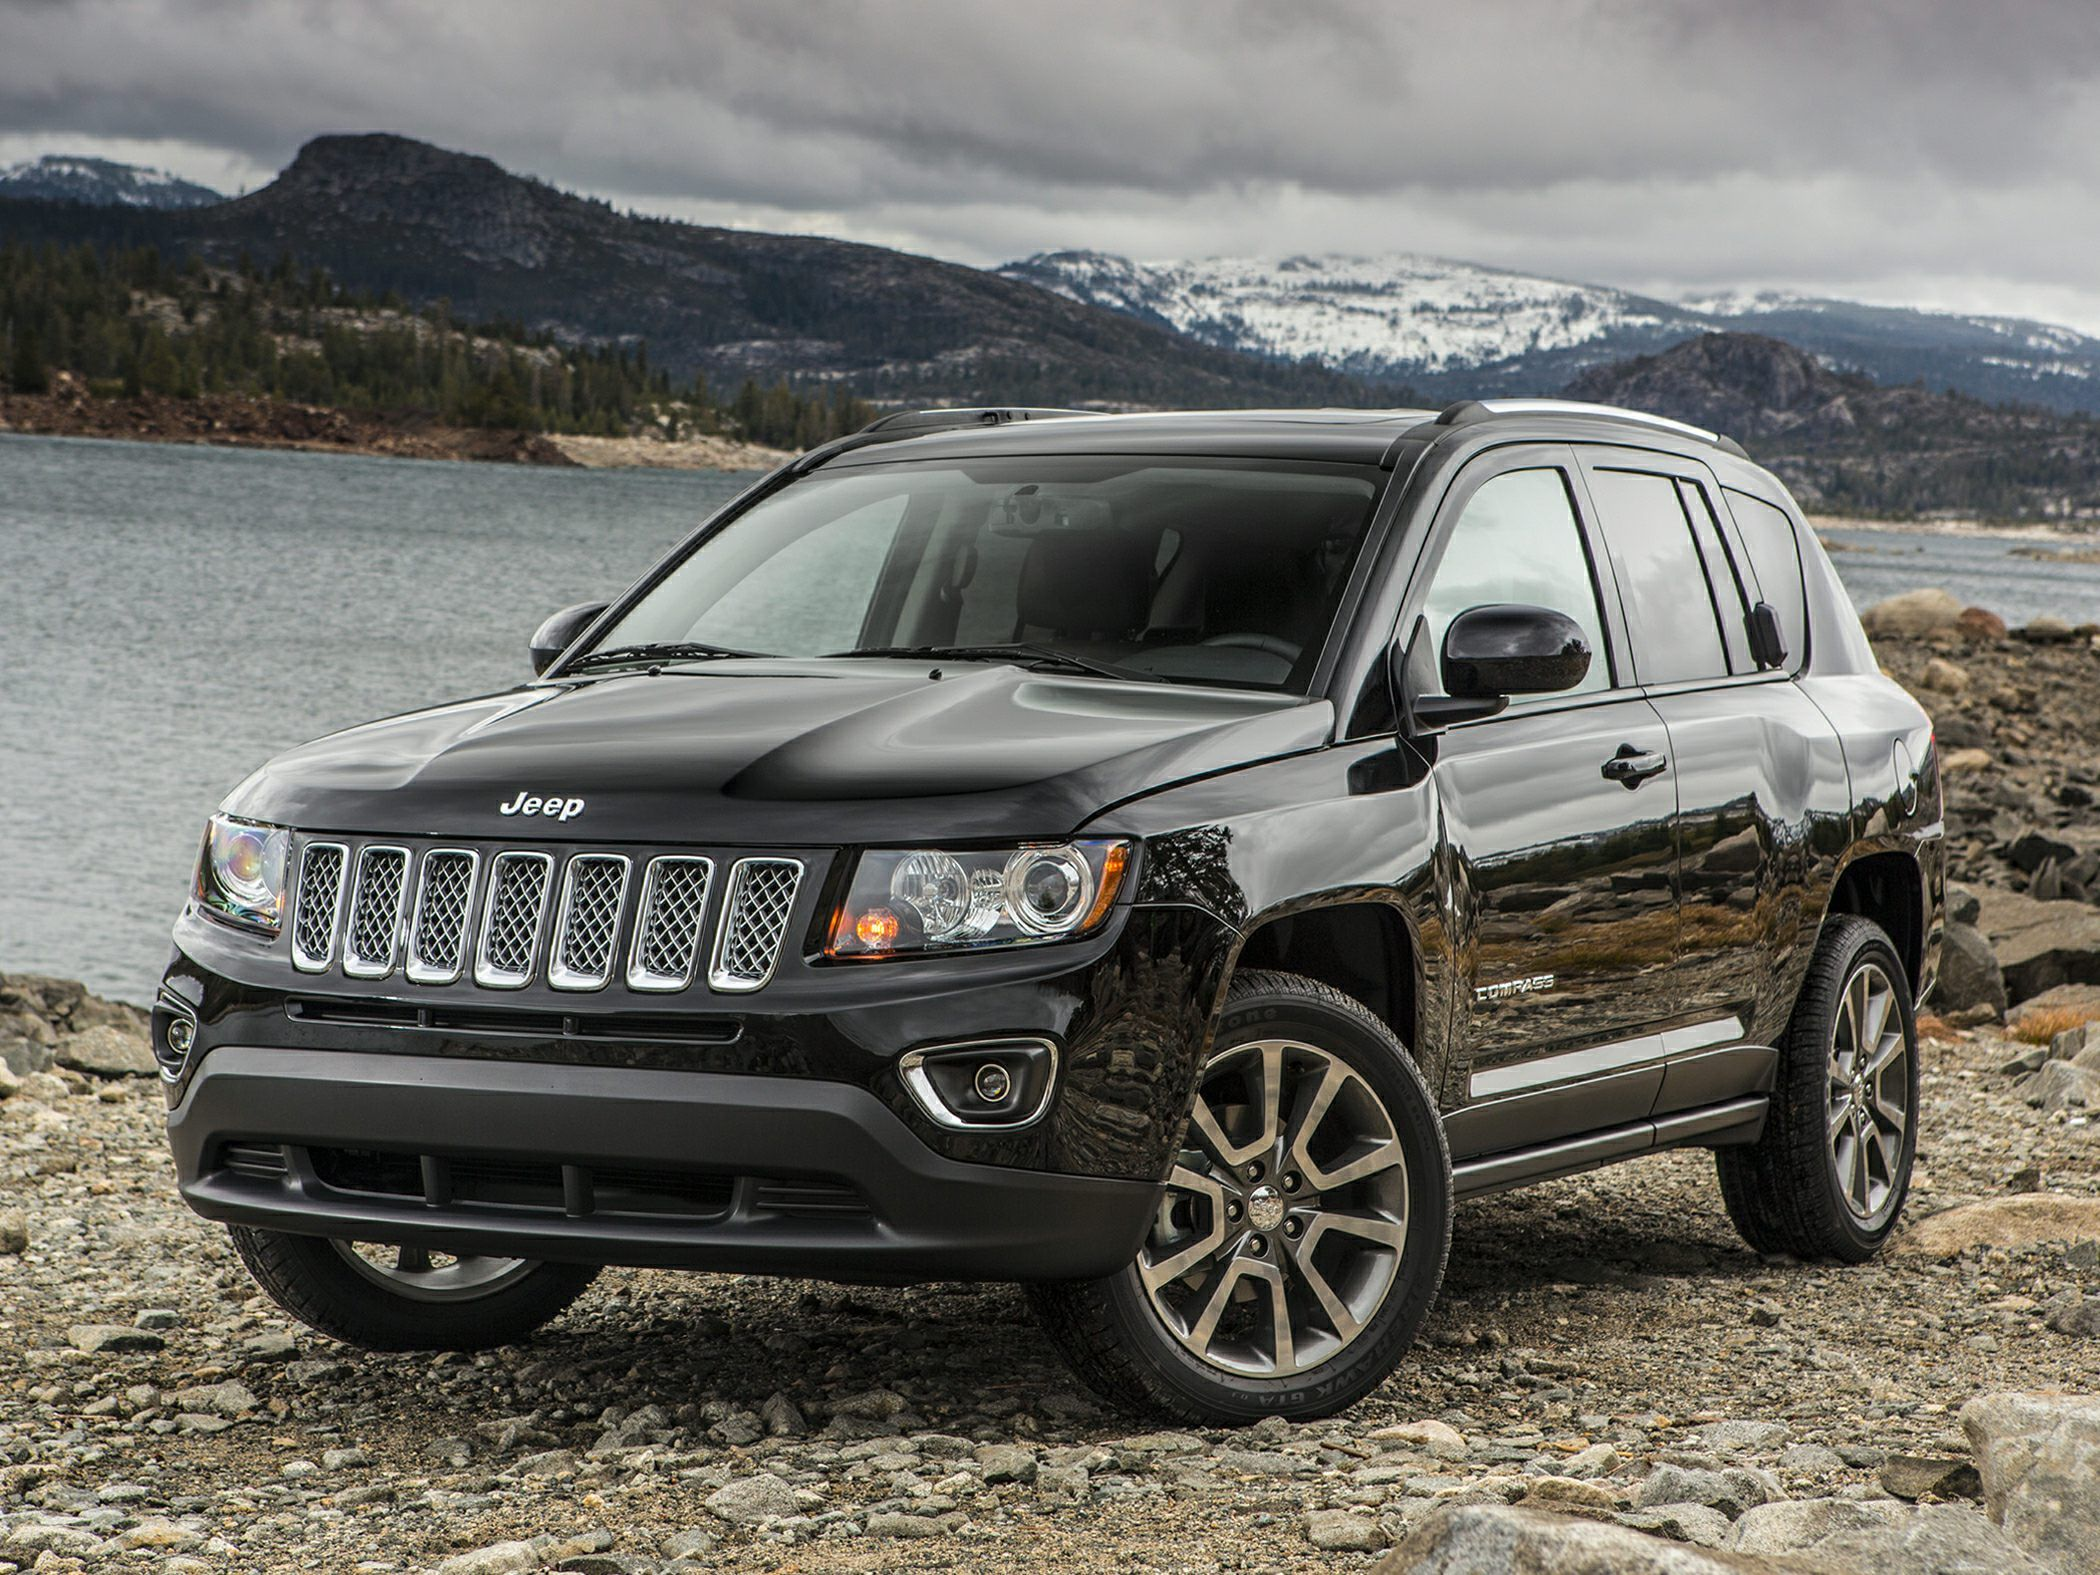 Jeep Compass Suv Black With Images Jeep Compass Jeep Compass